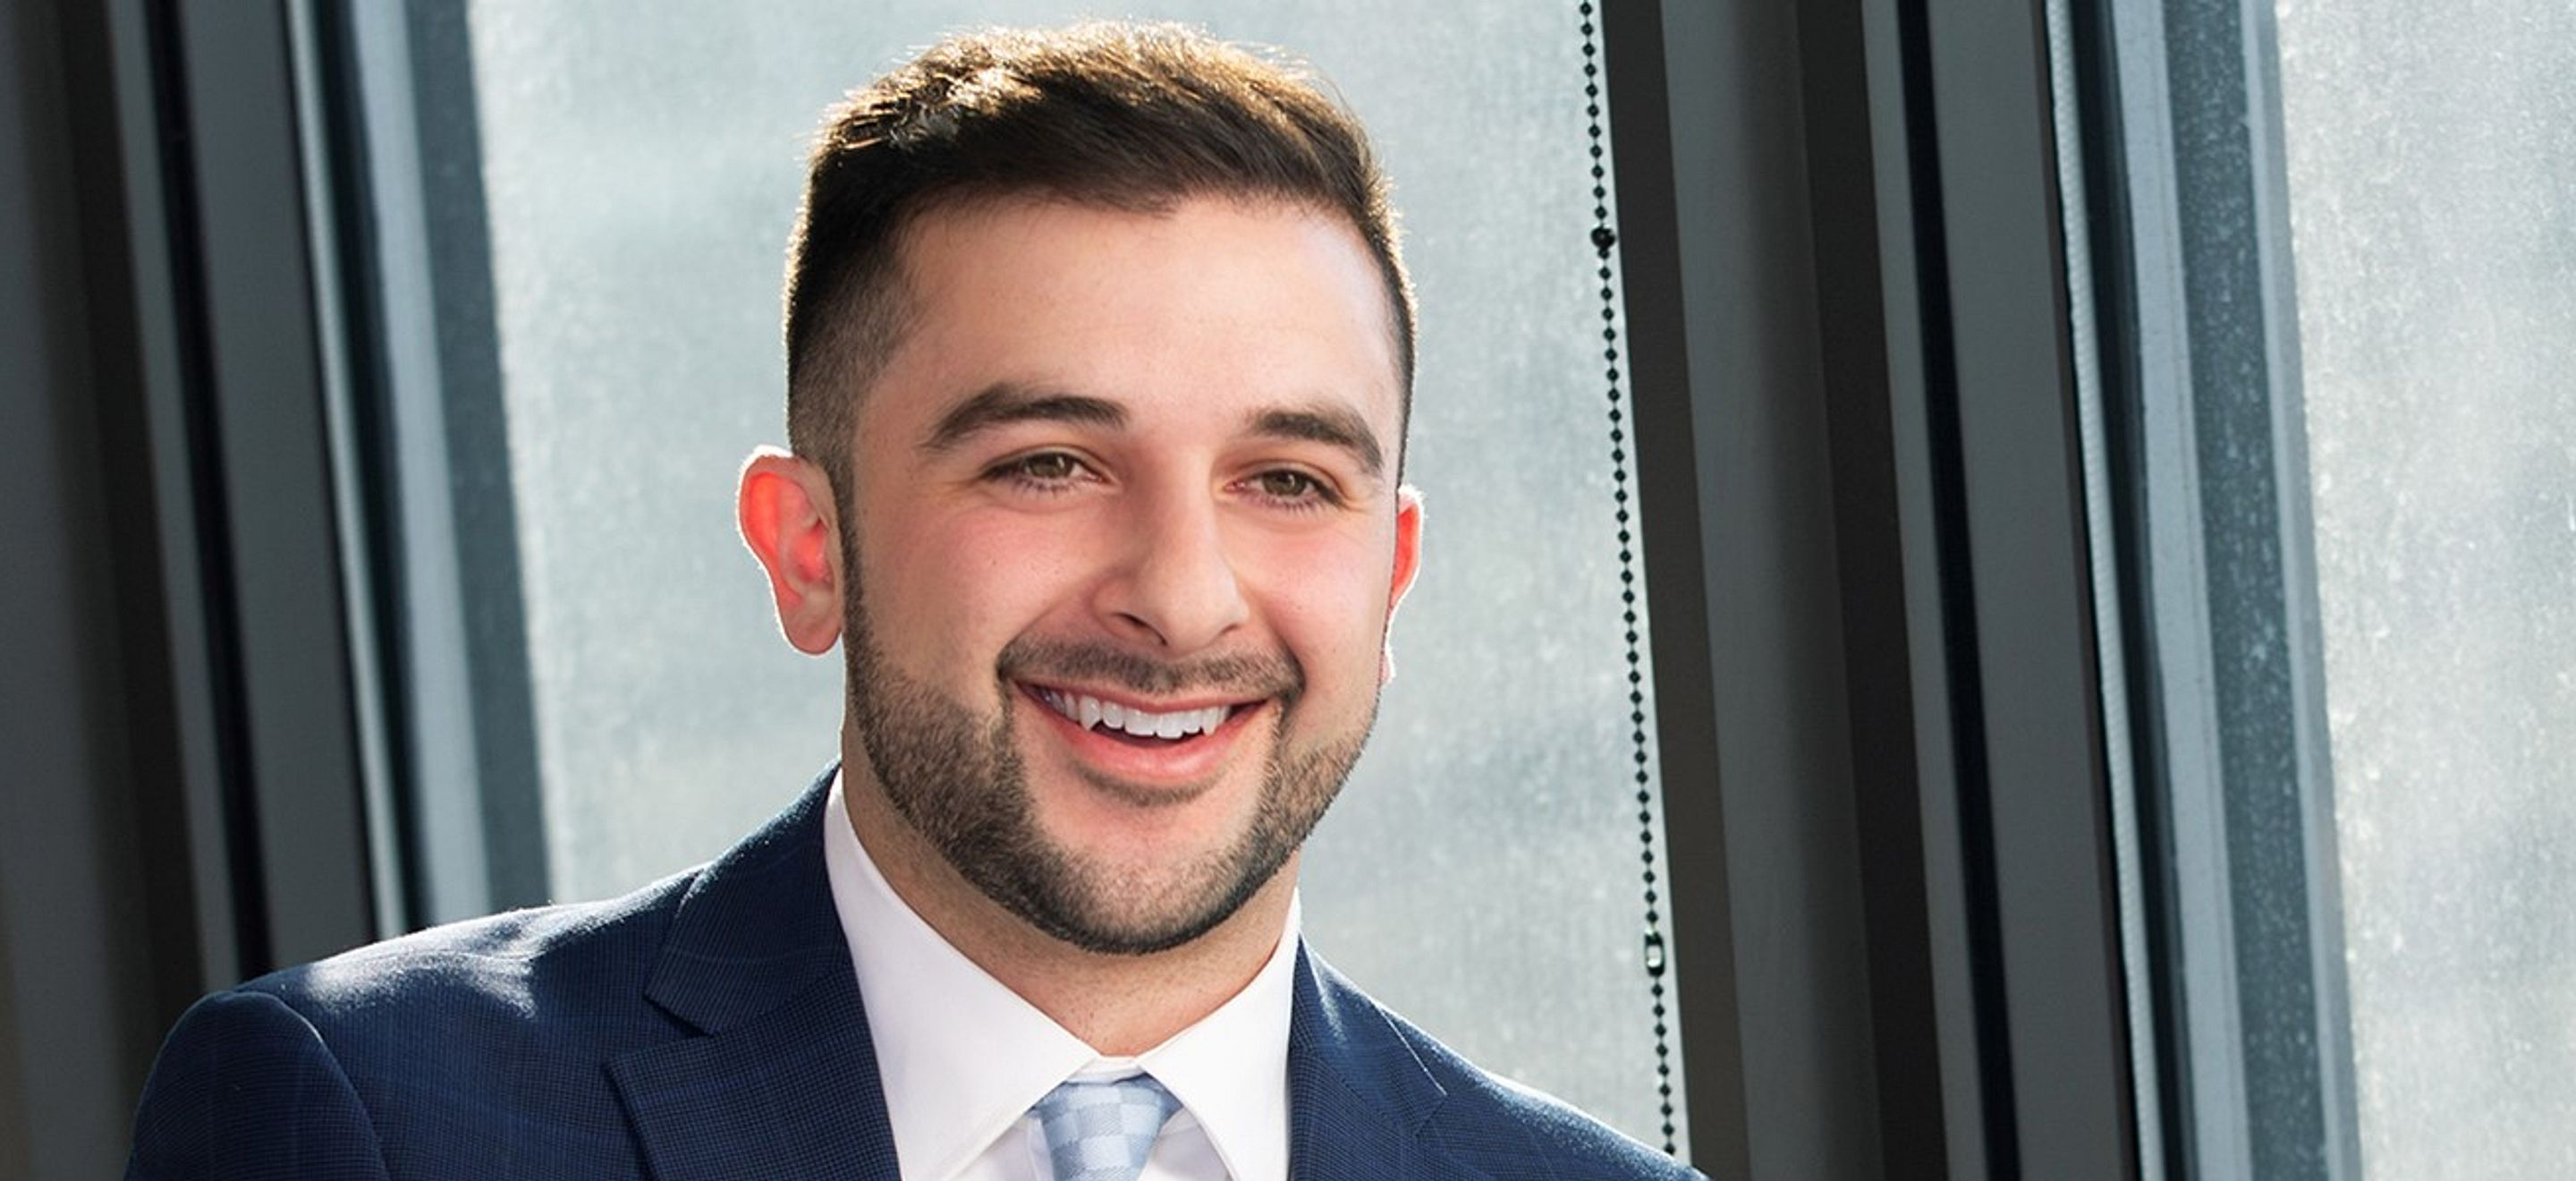 Beneel Babaei, an alumnus of an IRAP Law School Chapter, smiles, looking slightly past the camera. He wears a blue suit and has brown hair, brown eyes, and short facial hair. He poses against unobstructed windows in an office setting.